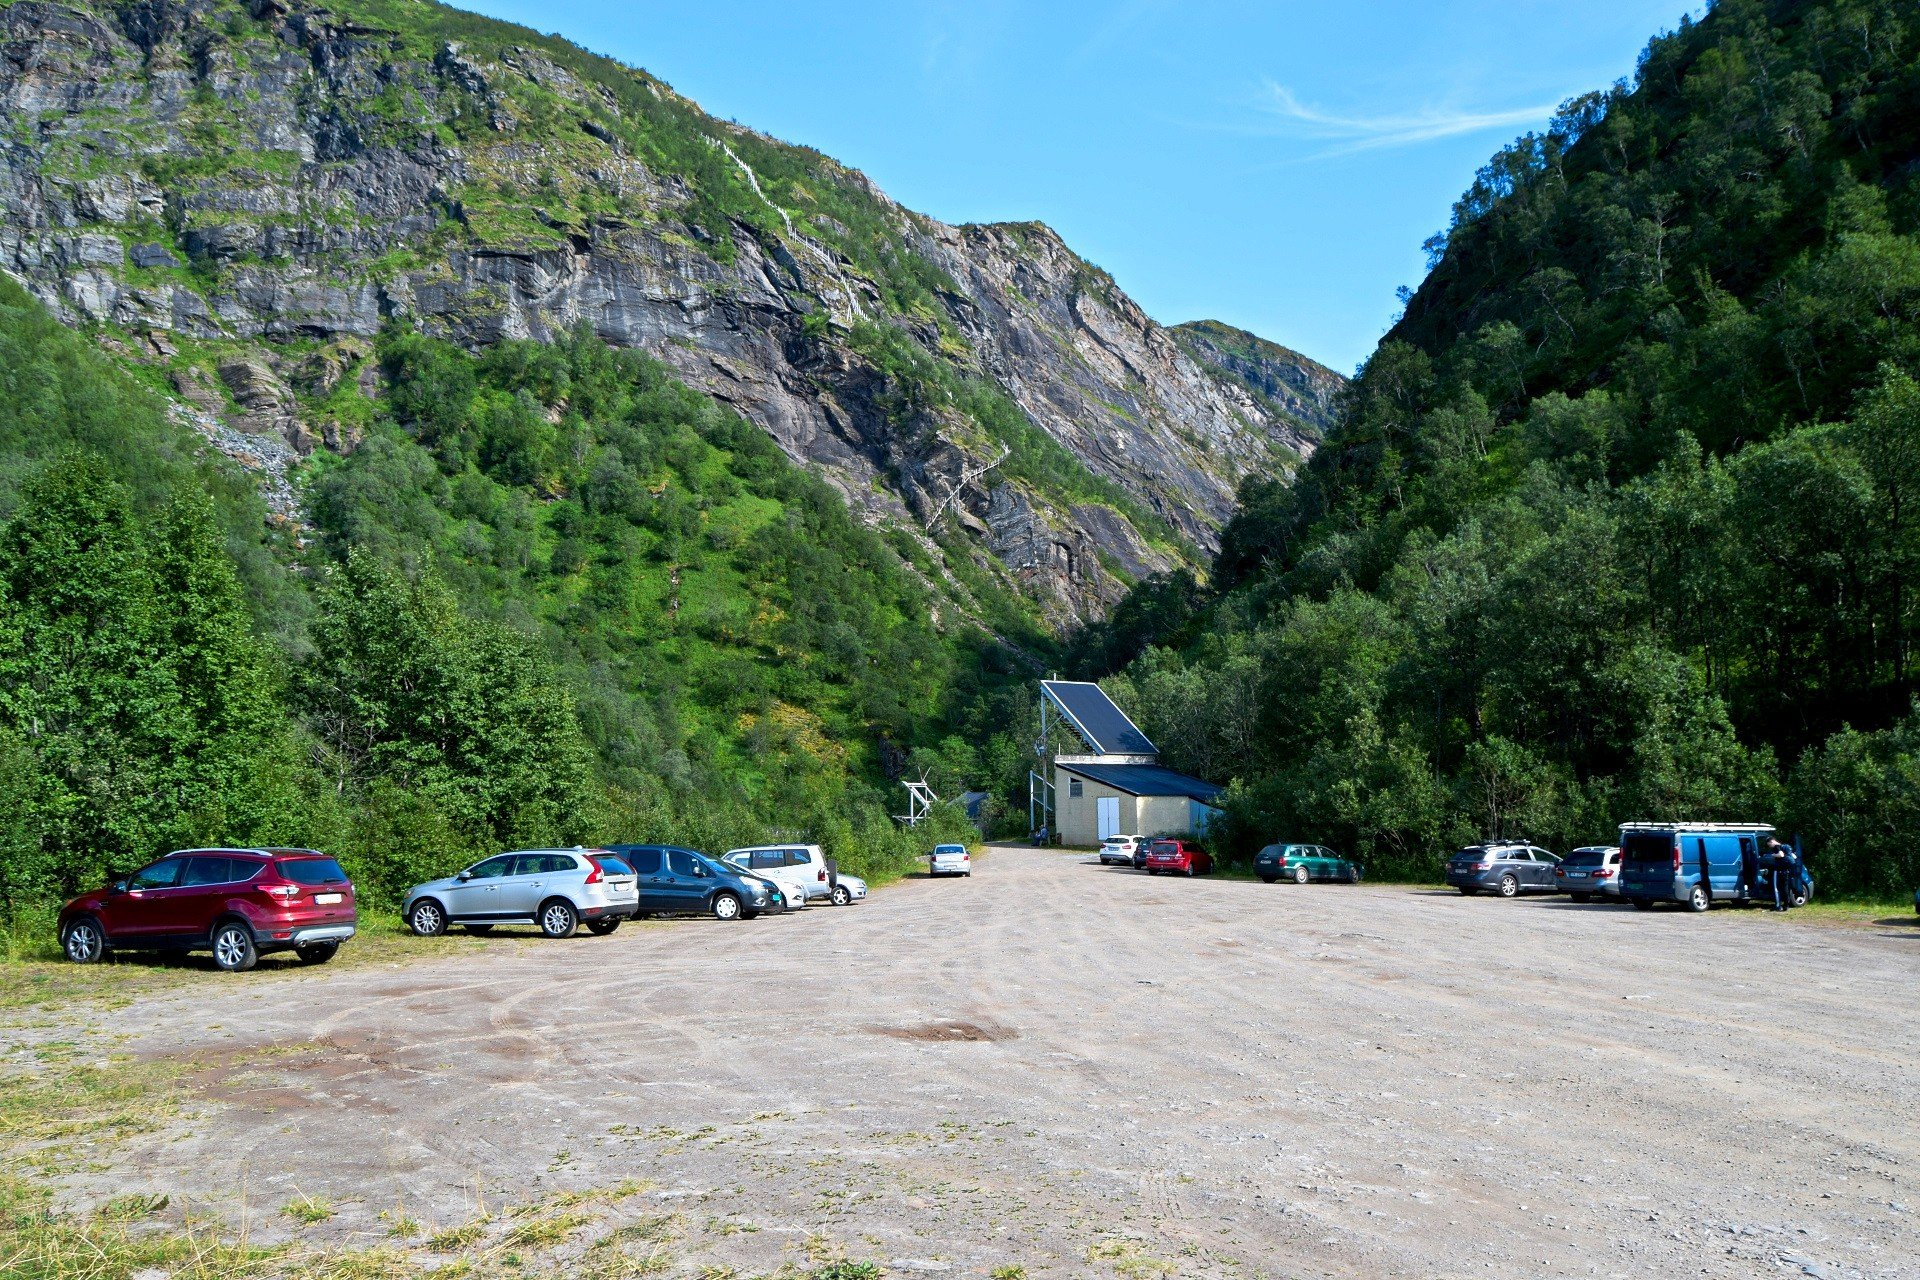 Start point for the hike up Fykantrappa to Rallarbrakka